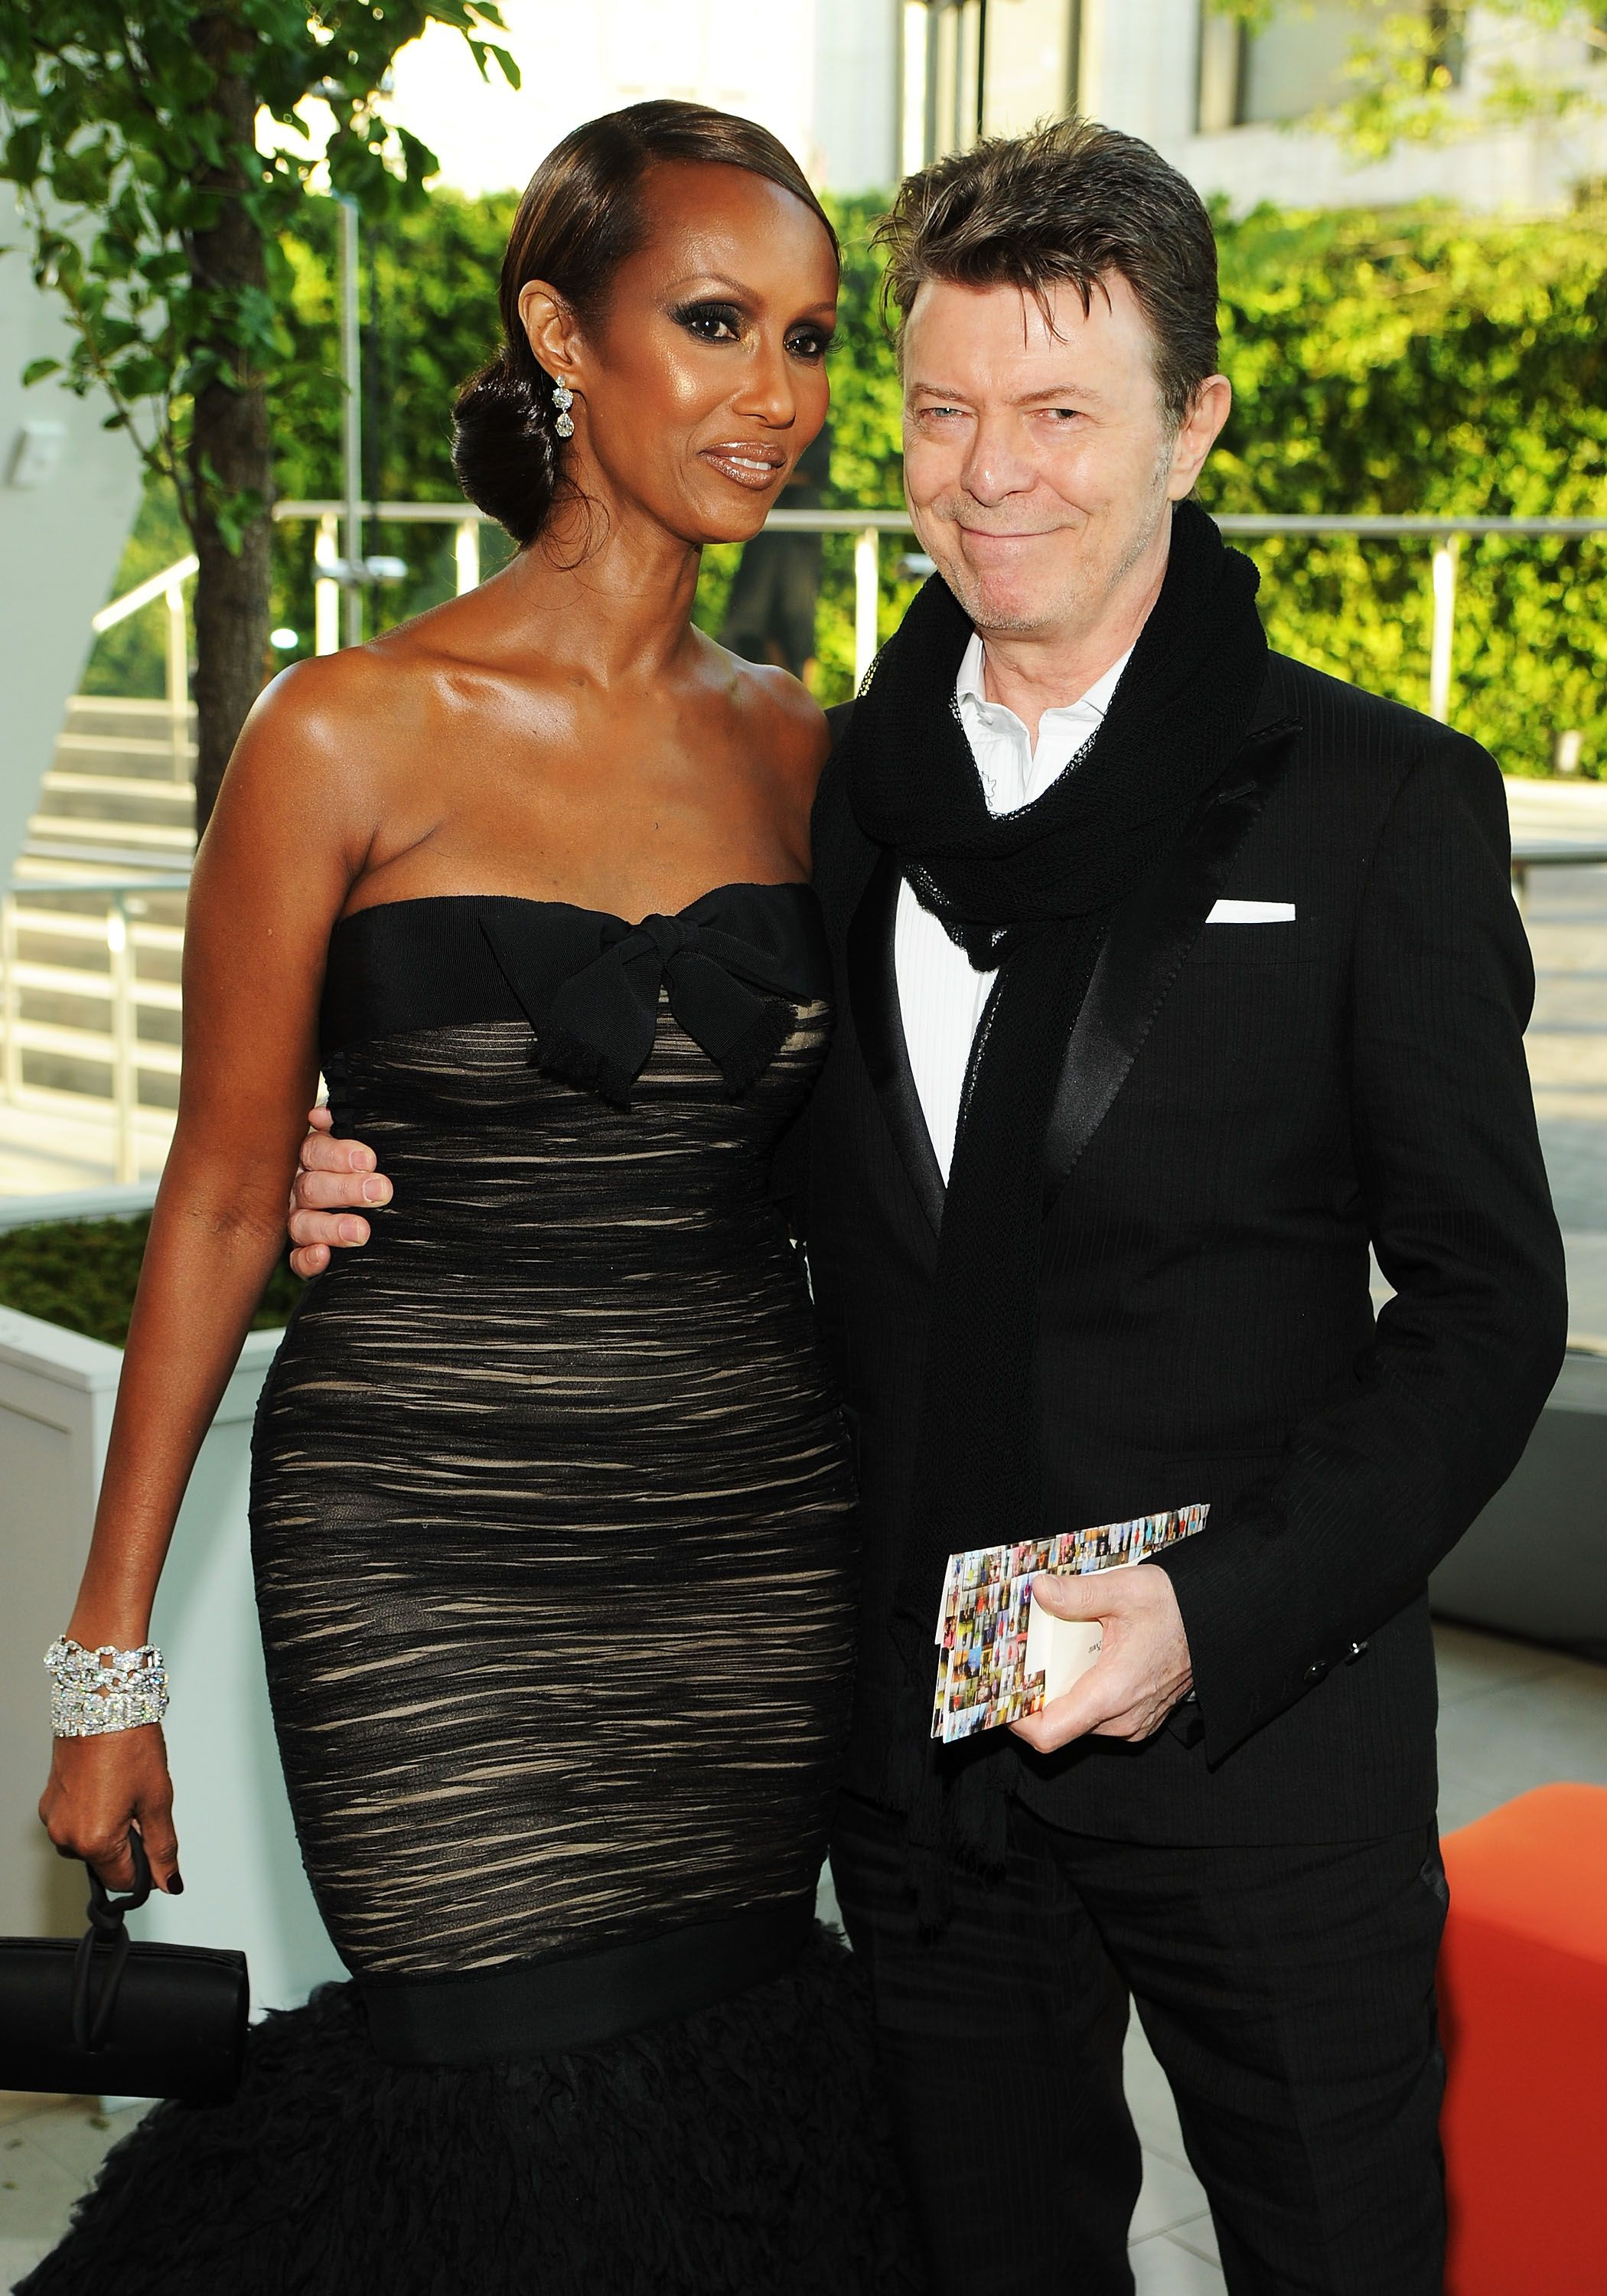 Model Iman and musician David Bowie at the 2010 CFDA Fashion Awards at Alice Tully Hall, Lincoln Center on June 7, 2010 | Photo: Getty Images